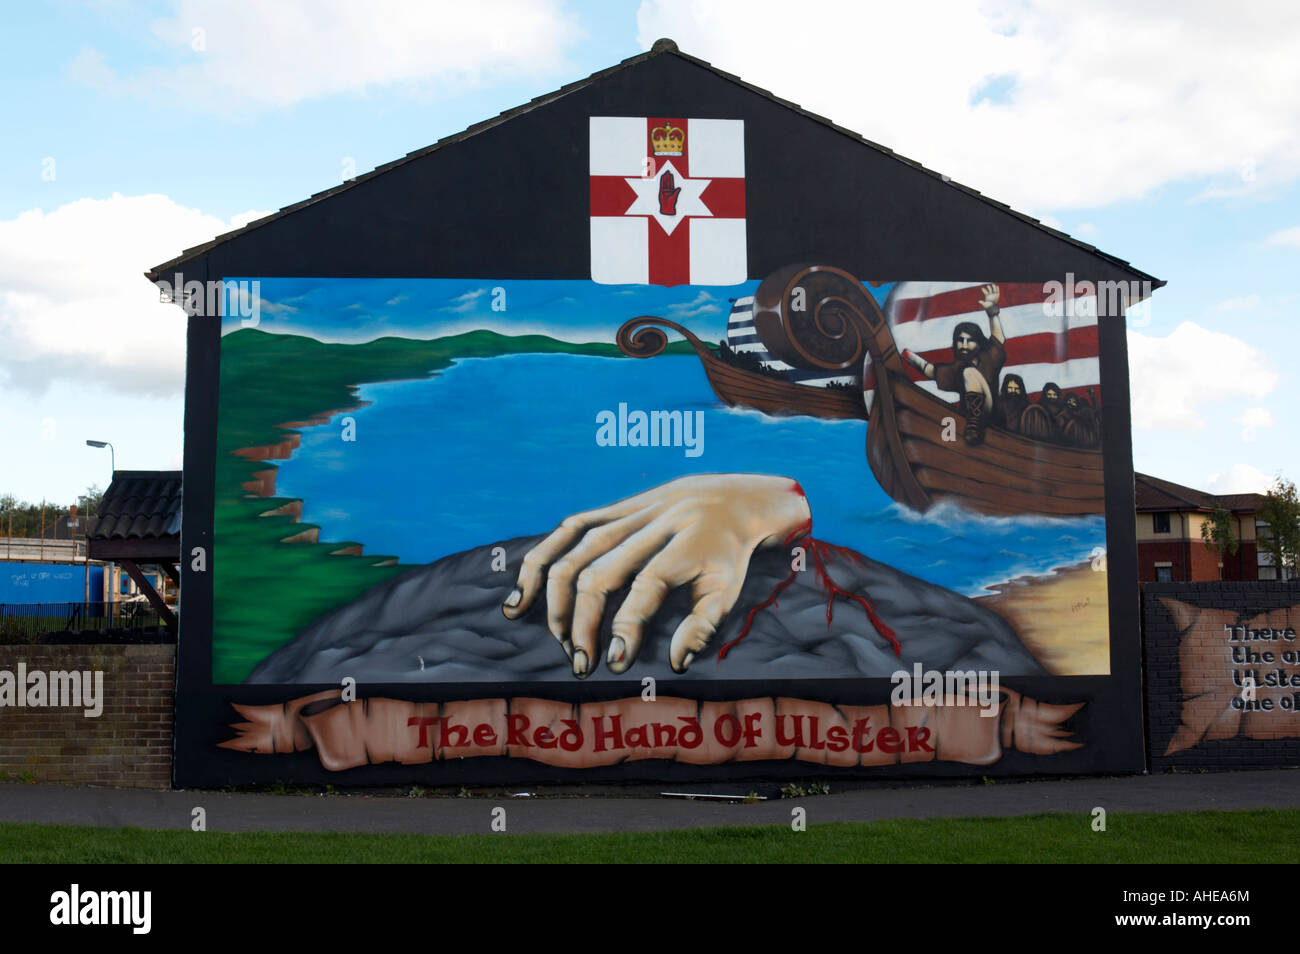 Loyalist Red Hand Of Ulster Murals In The Lower Shankill. Shopee Banners. Two Color Vinyl Stickers. White Vinyl Banners. Herakut Murals. Adwords Banners. Surf Fishing Decals. Doki Doki Literature Club Stickers. Photographer Car Decals